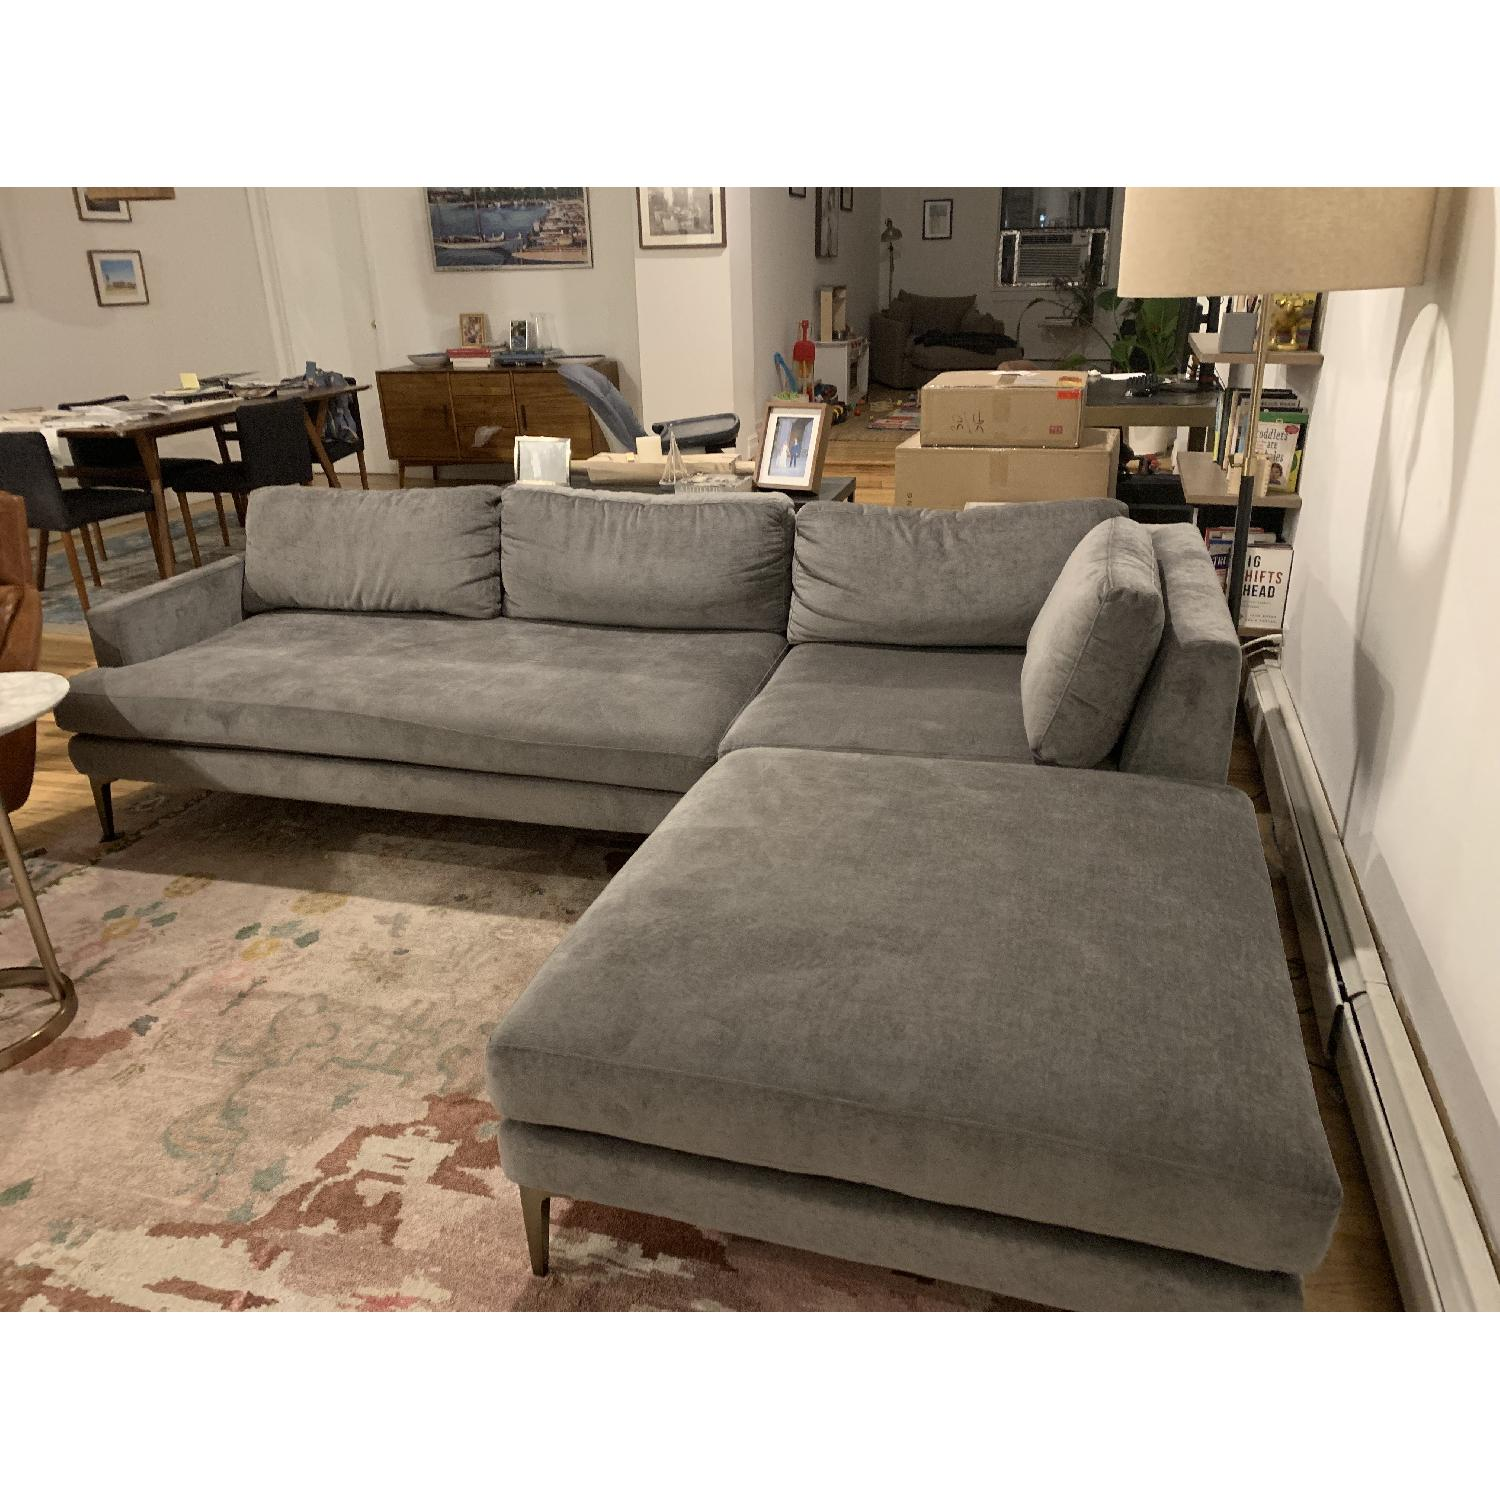 West Elm Andes 3-Piece Sectional Sofa in Performance - AptDeco